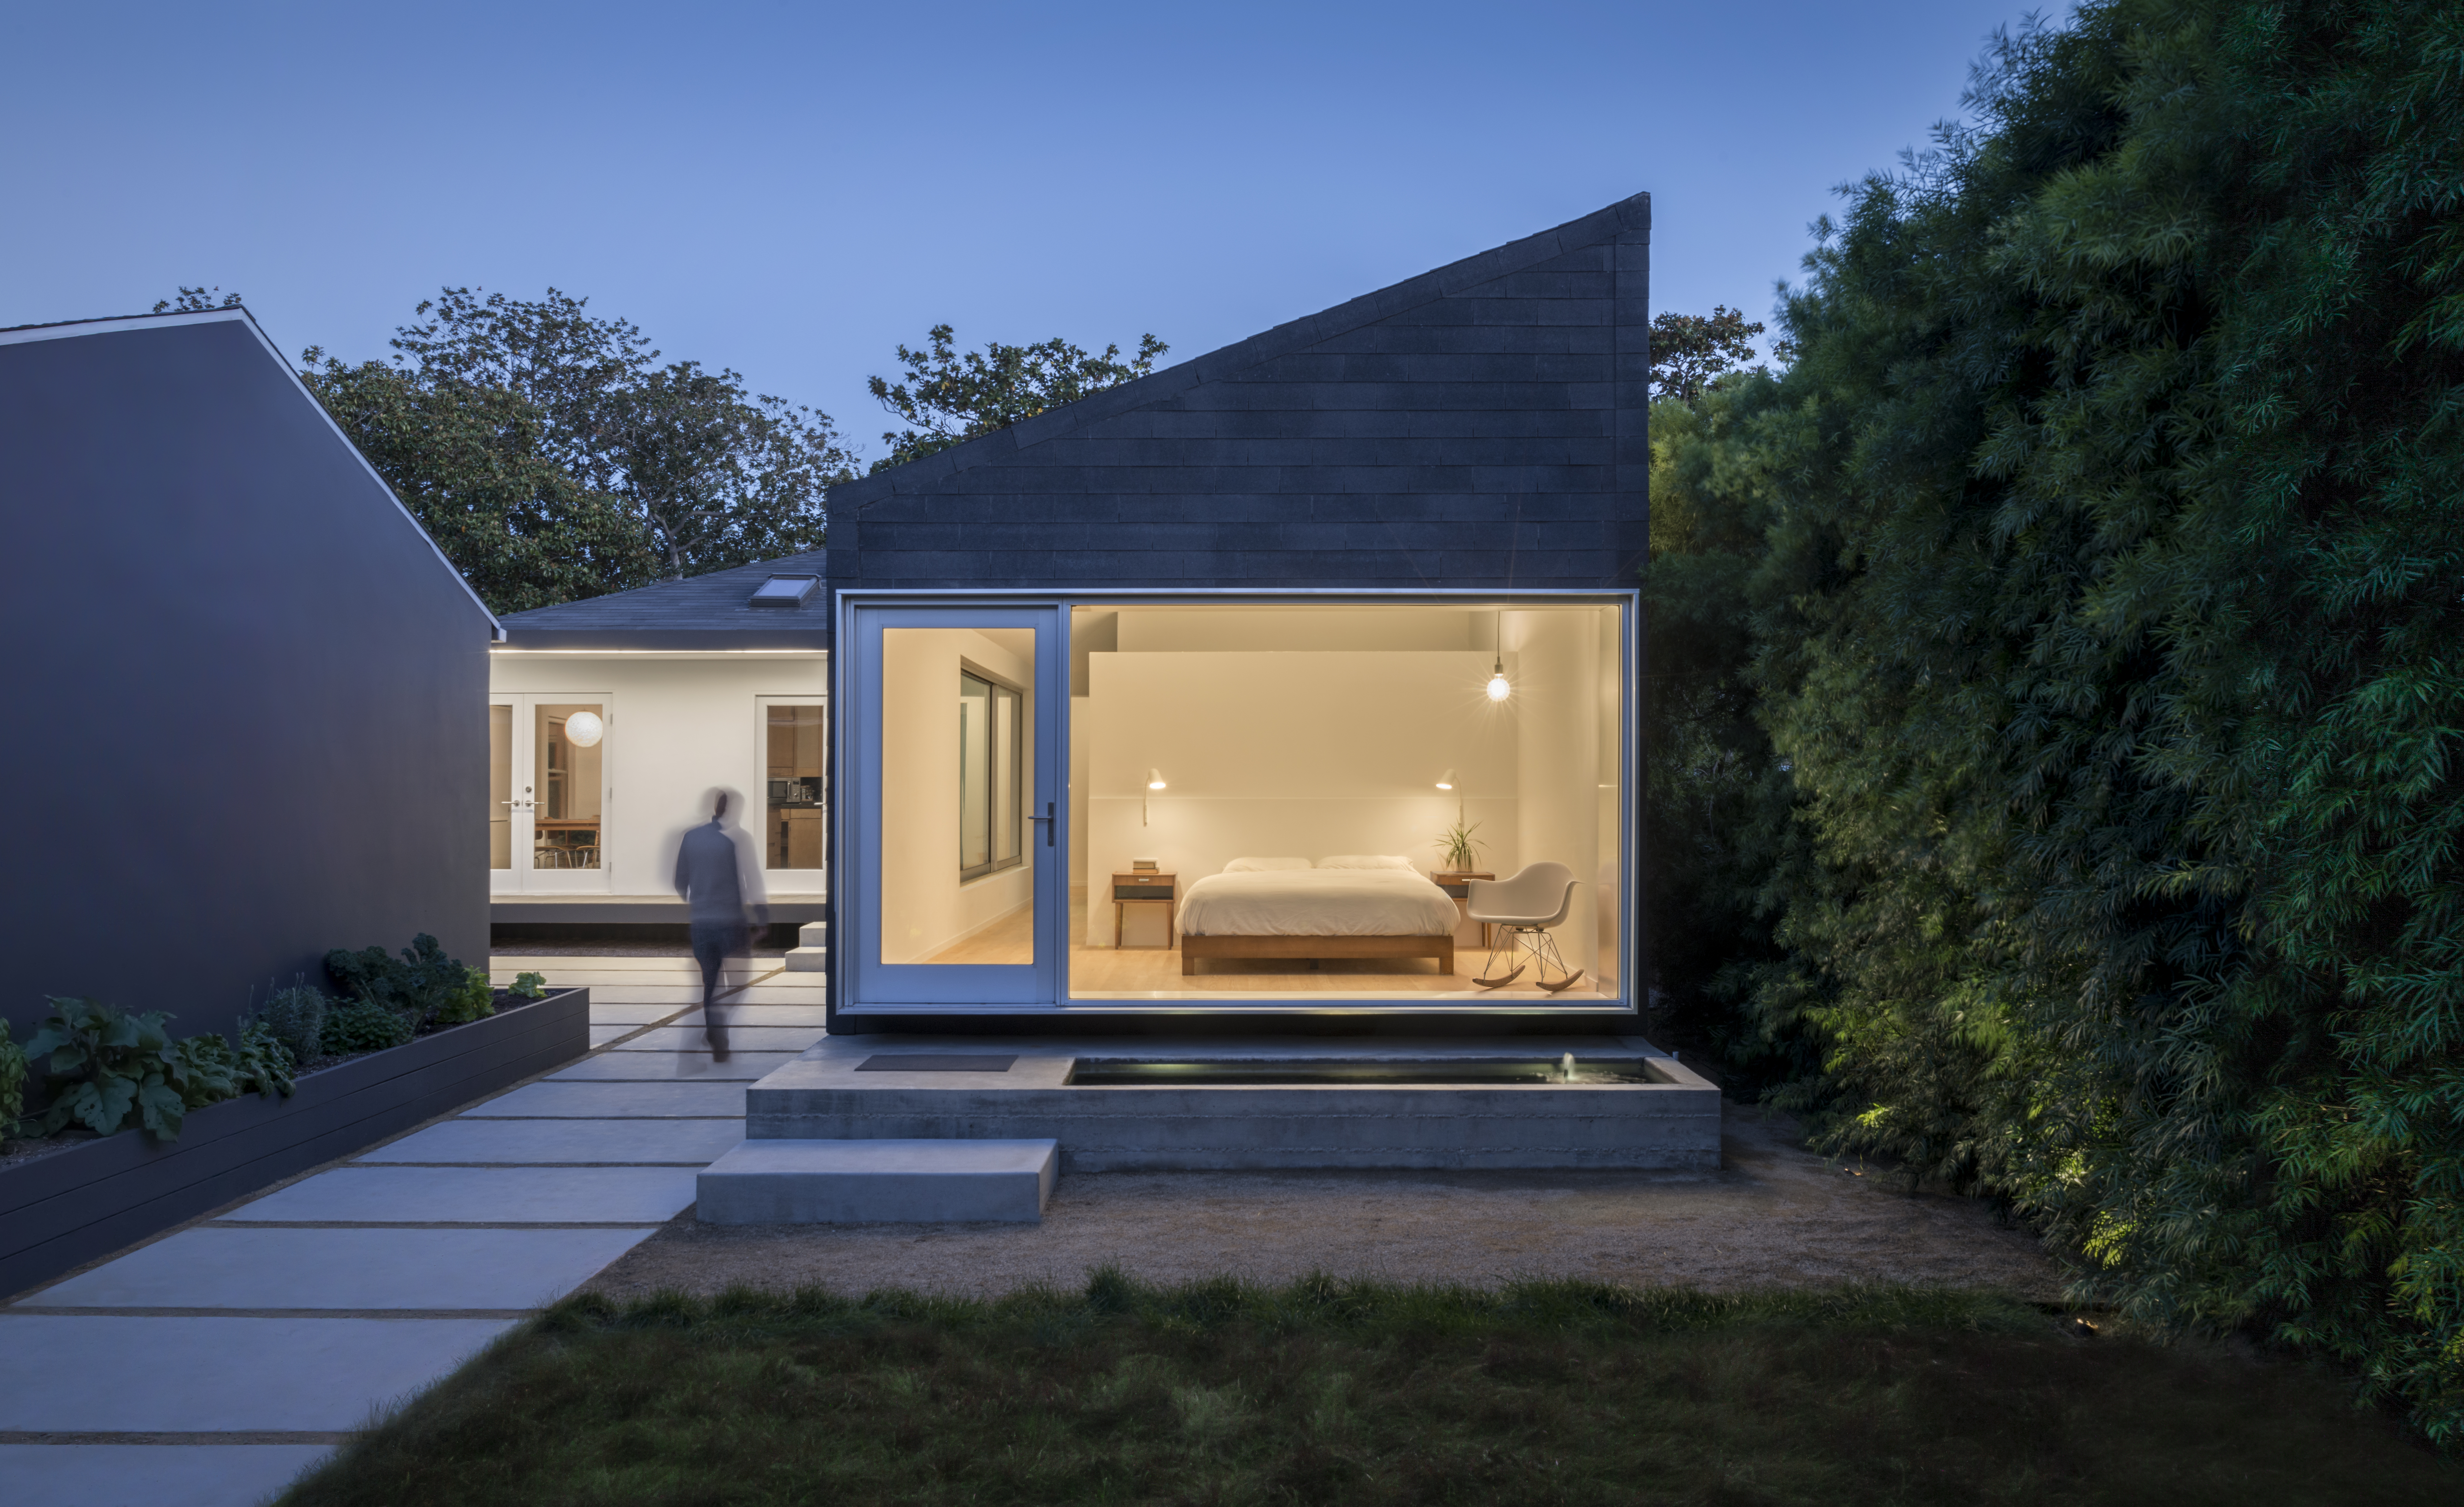 11 of the best small architecture projects of 2018